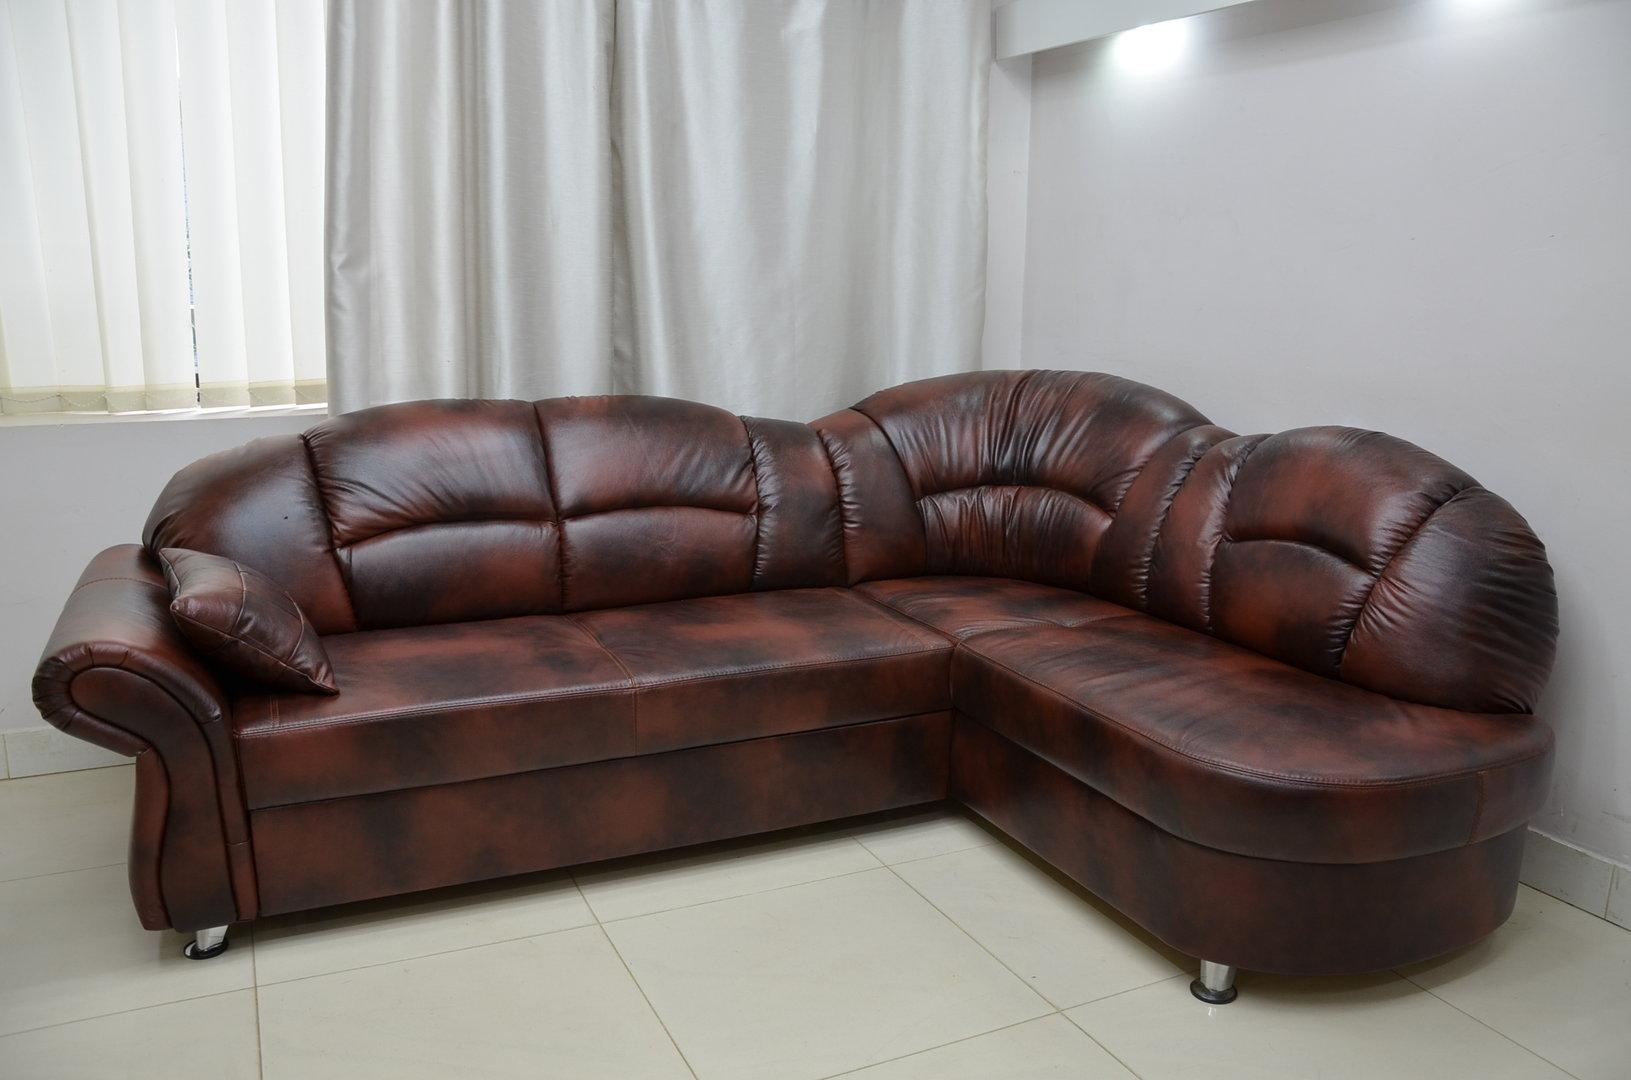 Real Leather Corner Sofa Bed Romero, Real Leather All Over For Corner Sofa Leather (View 13 of 20)